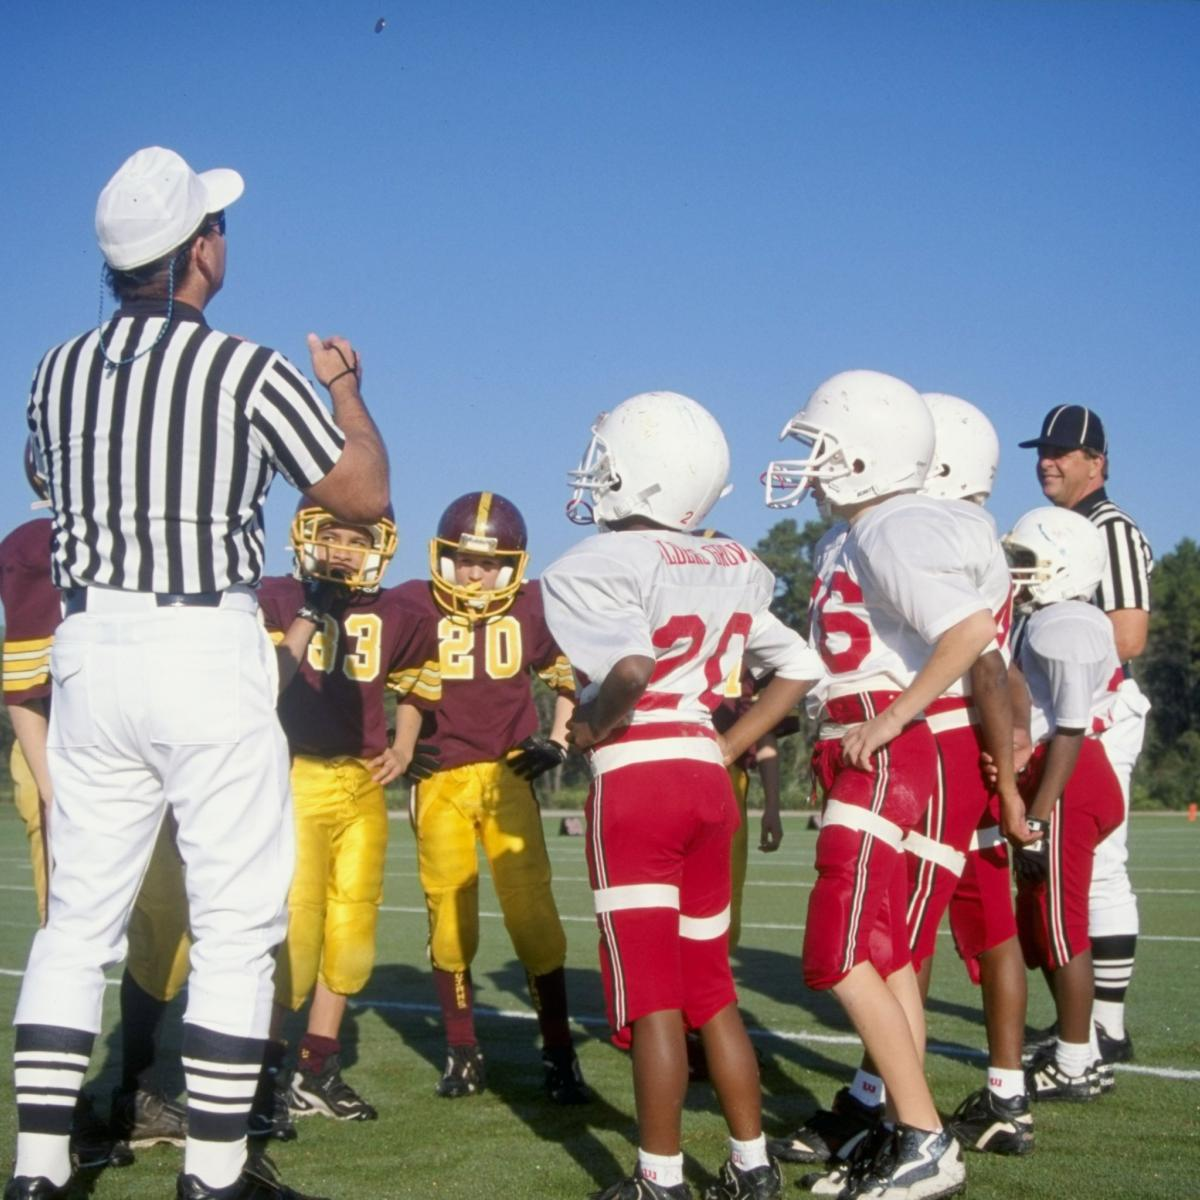 003dc9fb8 Questions to Consider Before Letting Your Child Play Youth Football ...